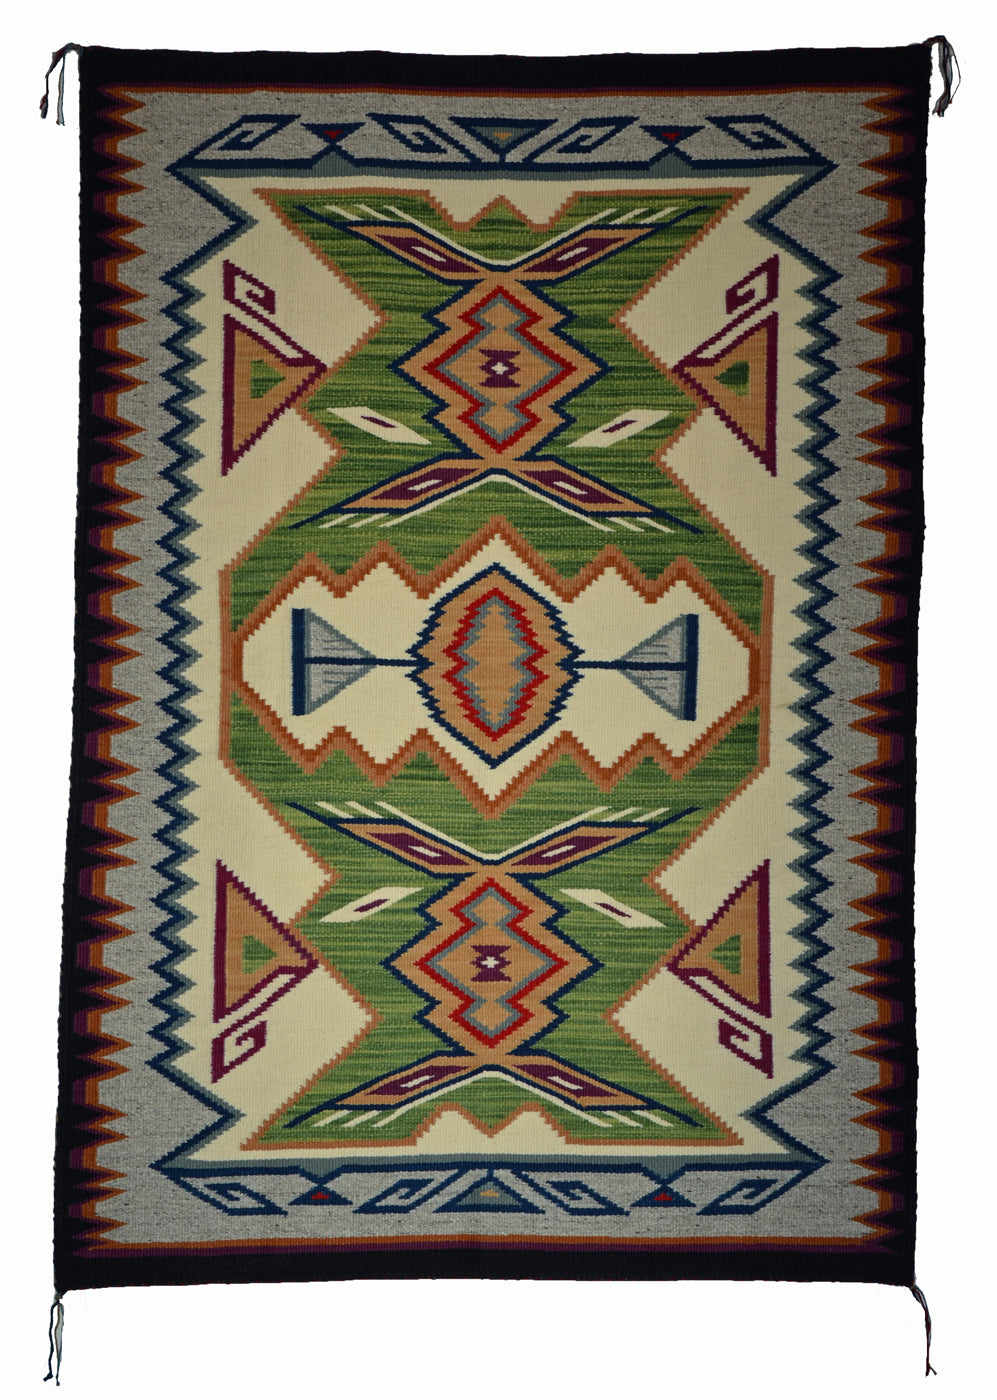 "HOLD Innovative Design : Crystal : Native American Rug : Frances Begay : Churro 1630 : 41.5"" x 60"" - Getzwiller's Nizhoni Ranch Gallery"